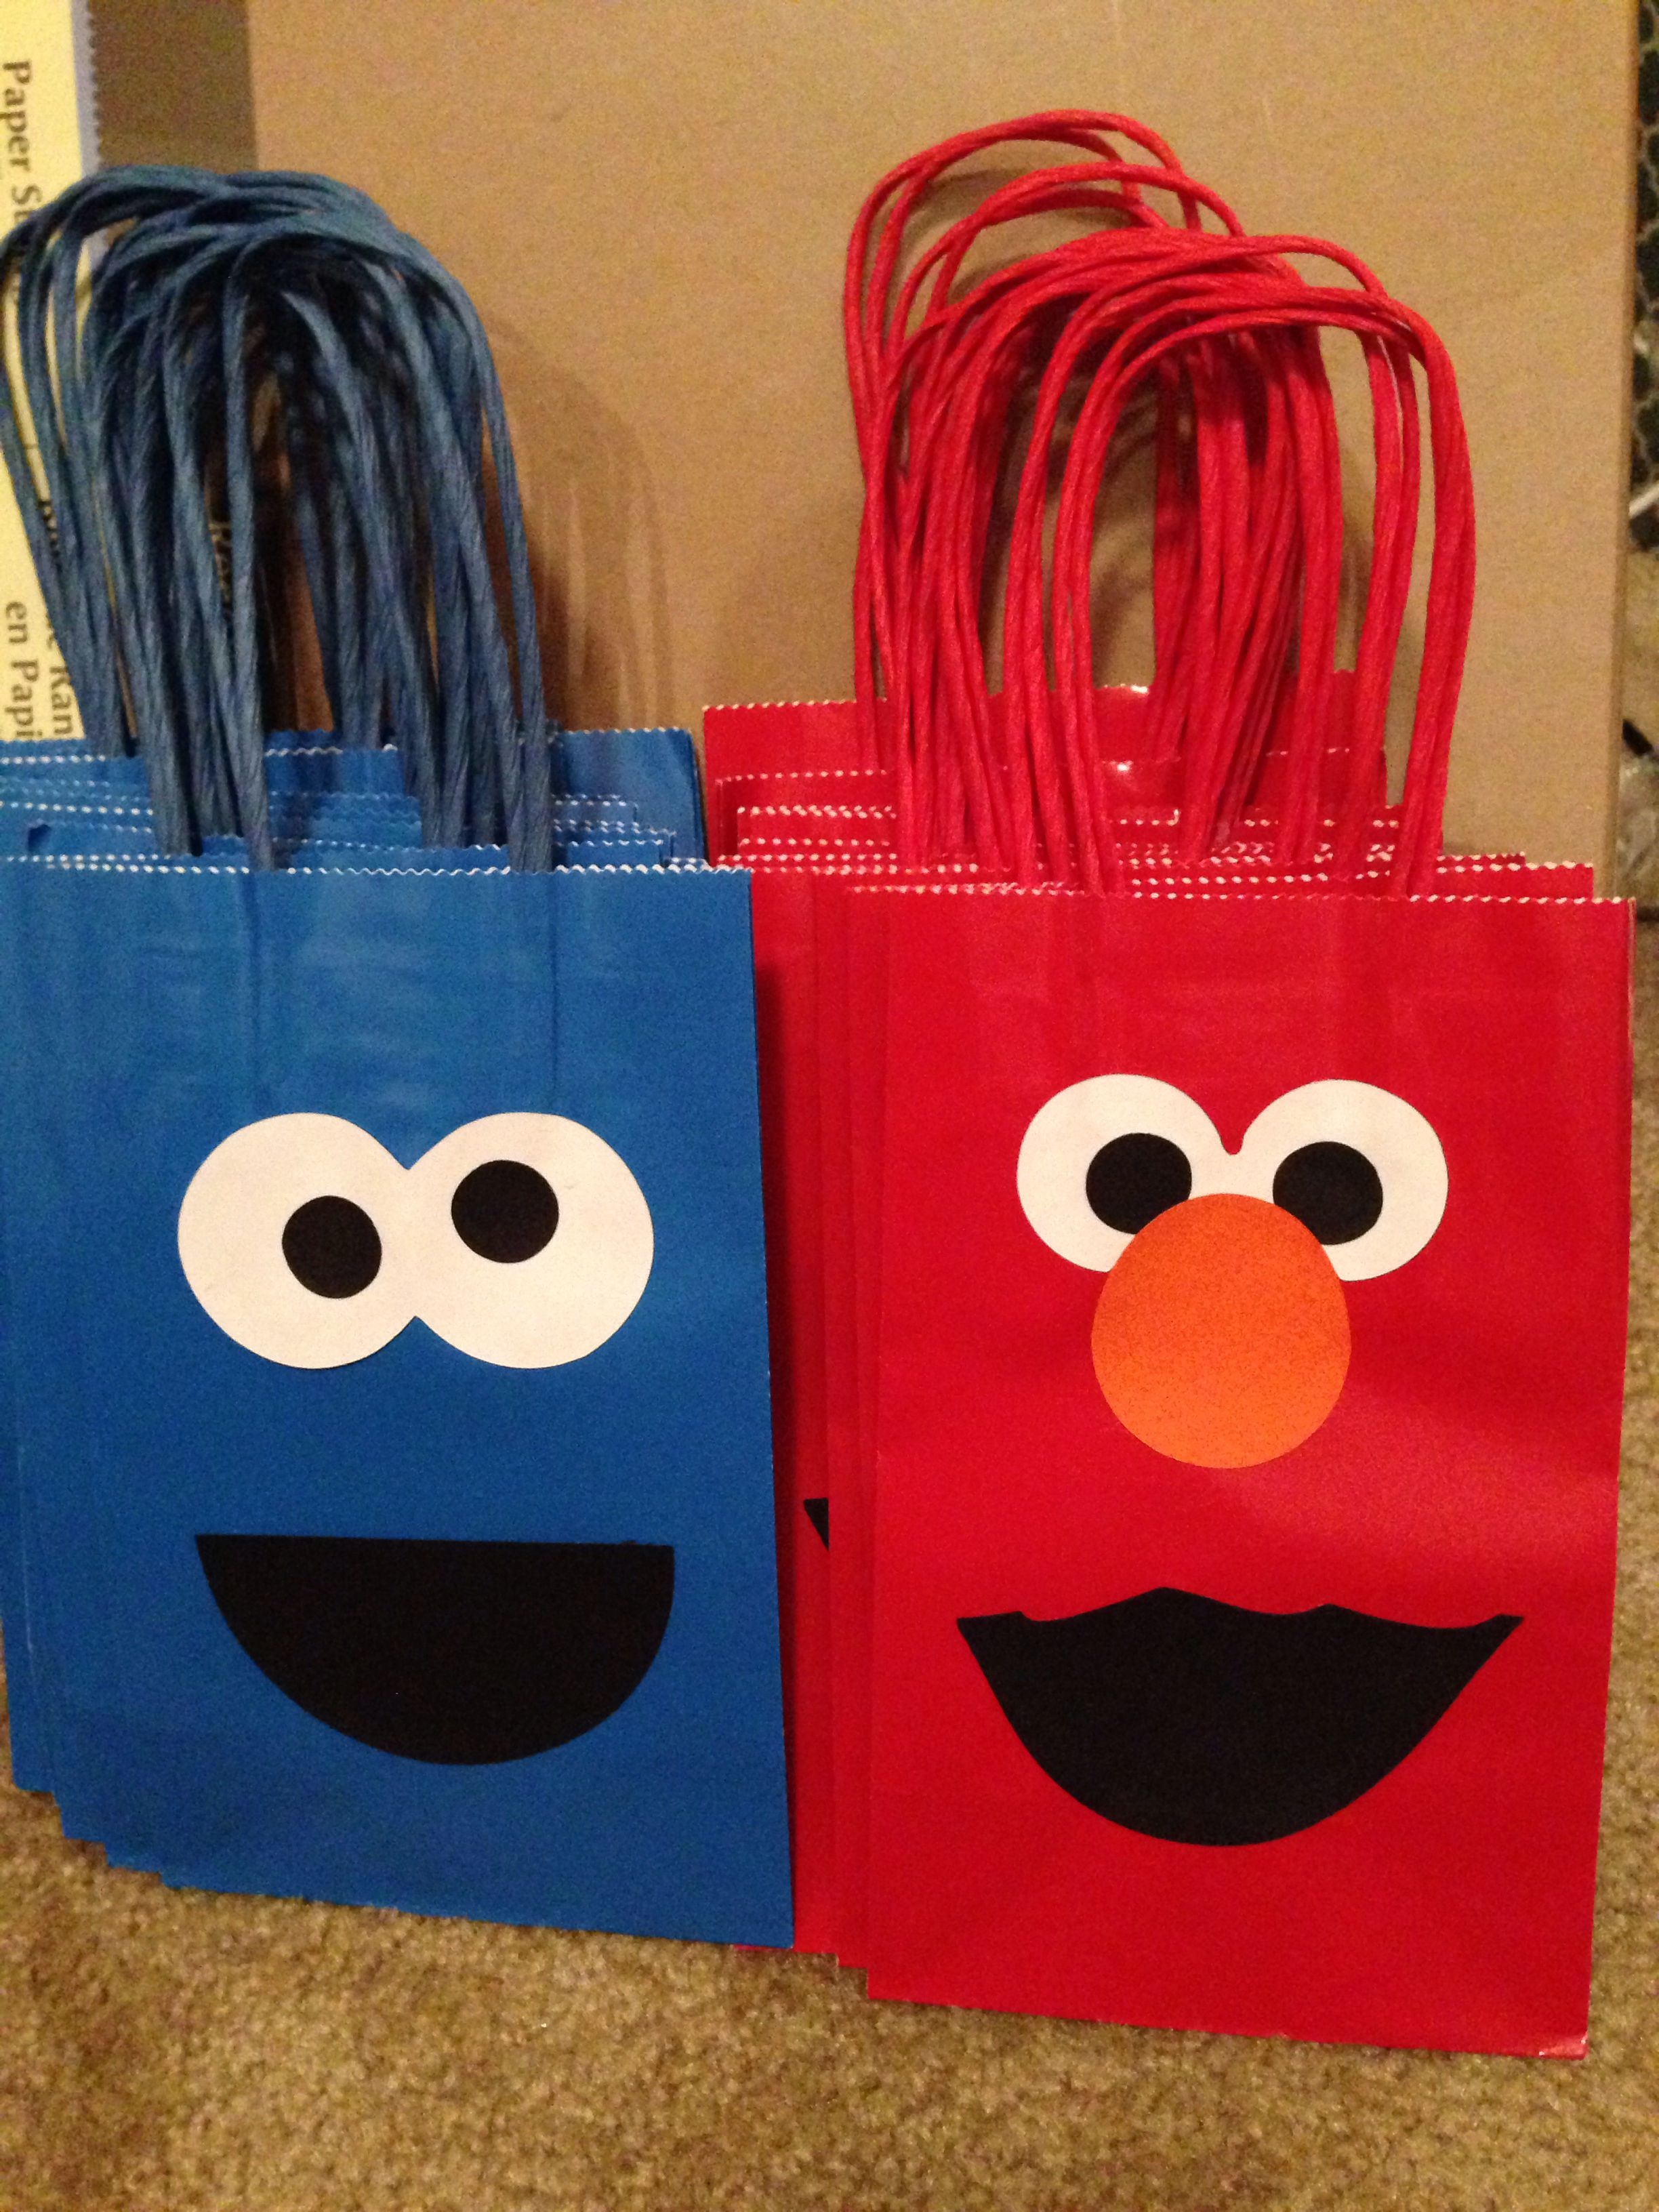 Elmo and Cookie Monster goo bags